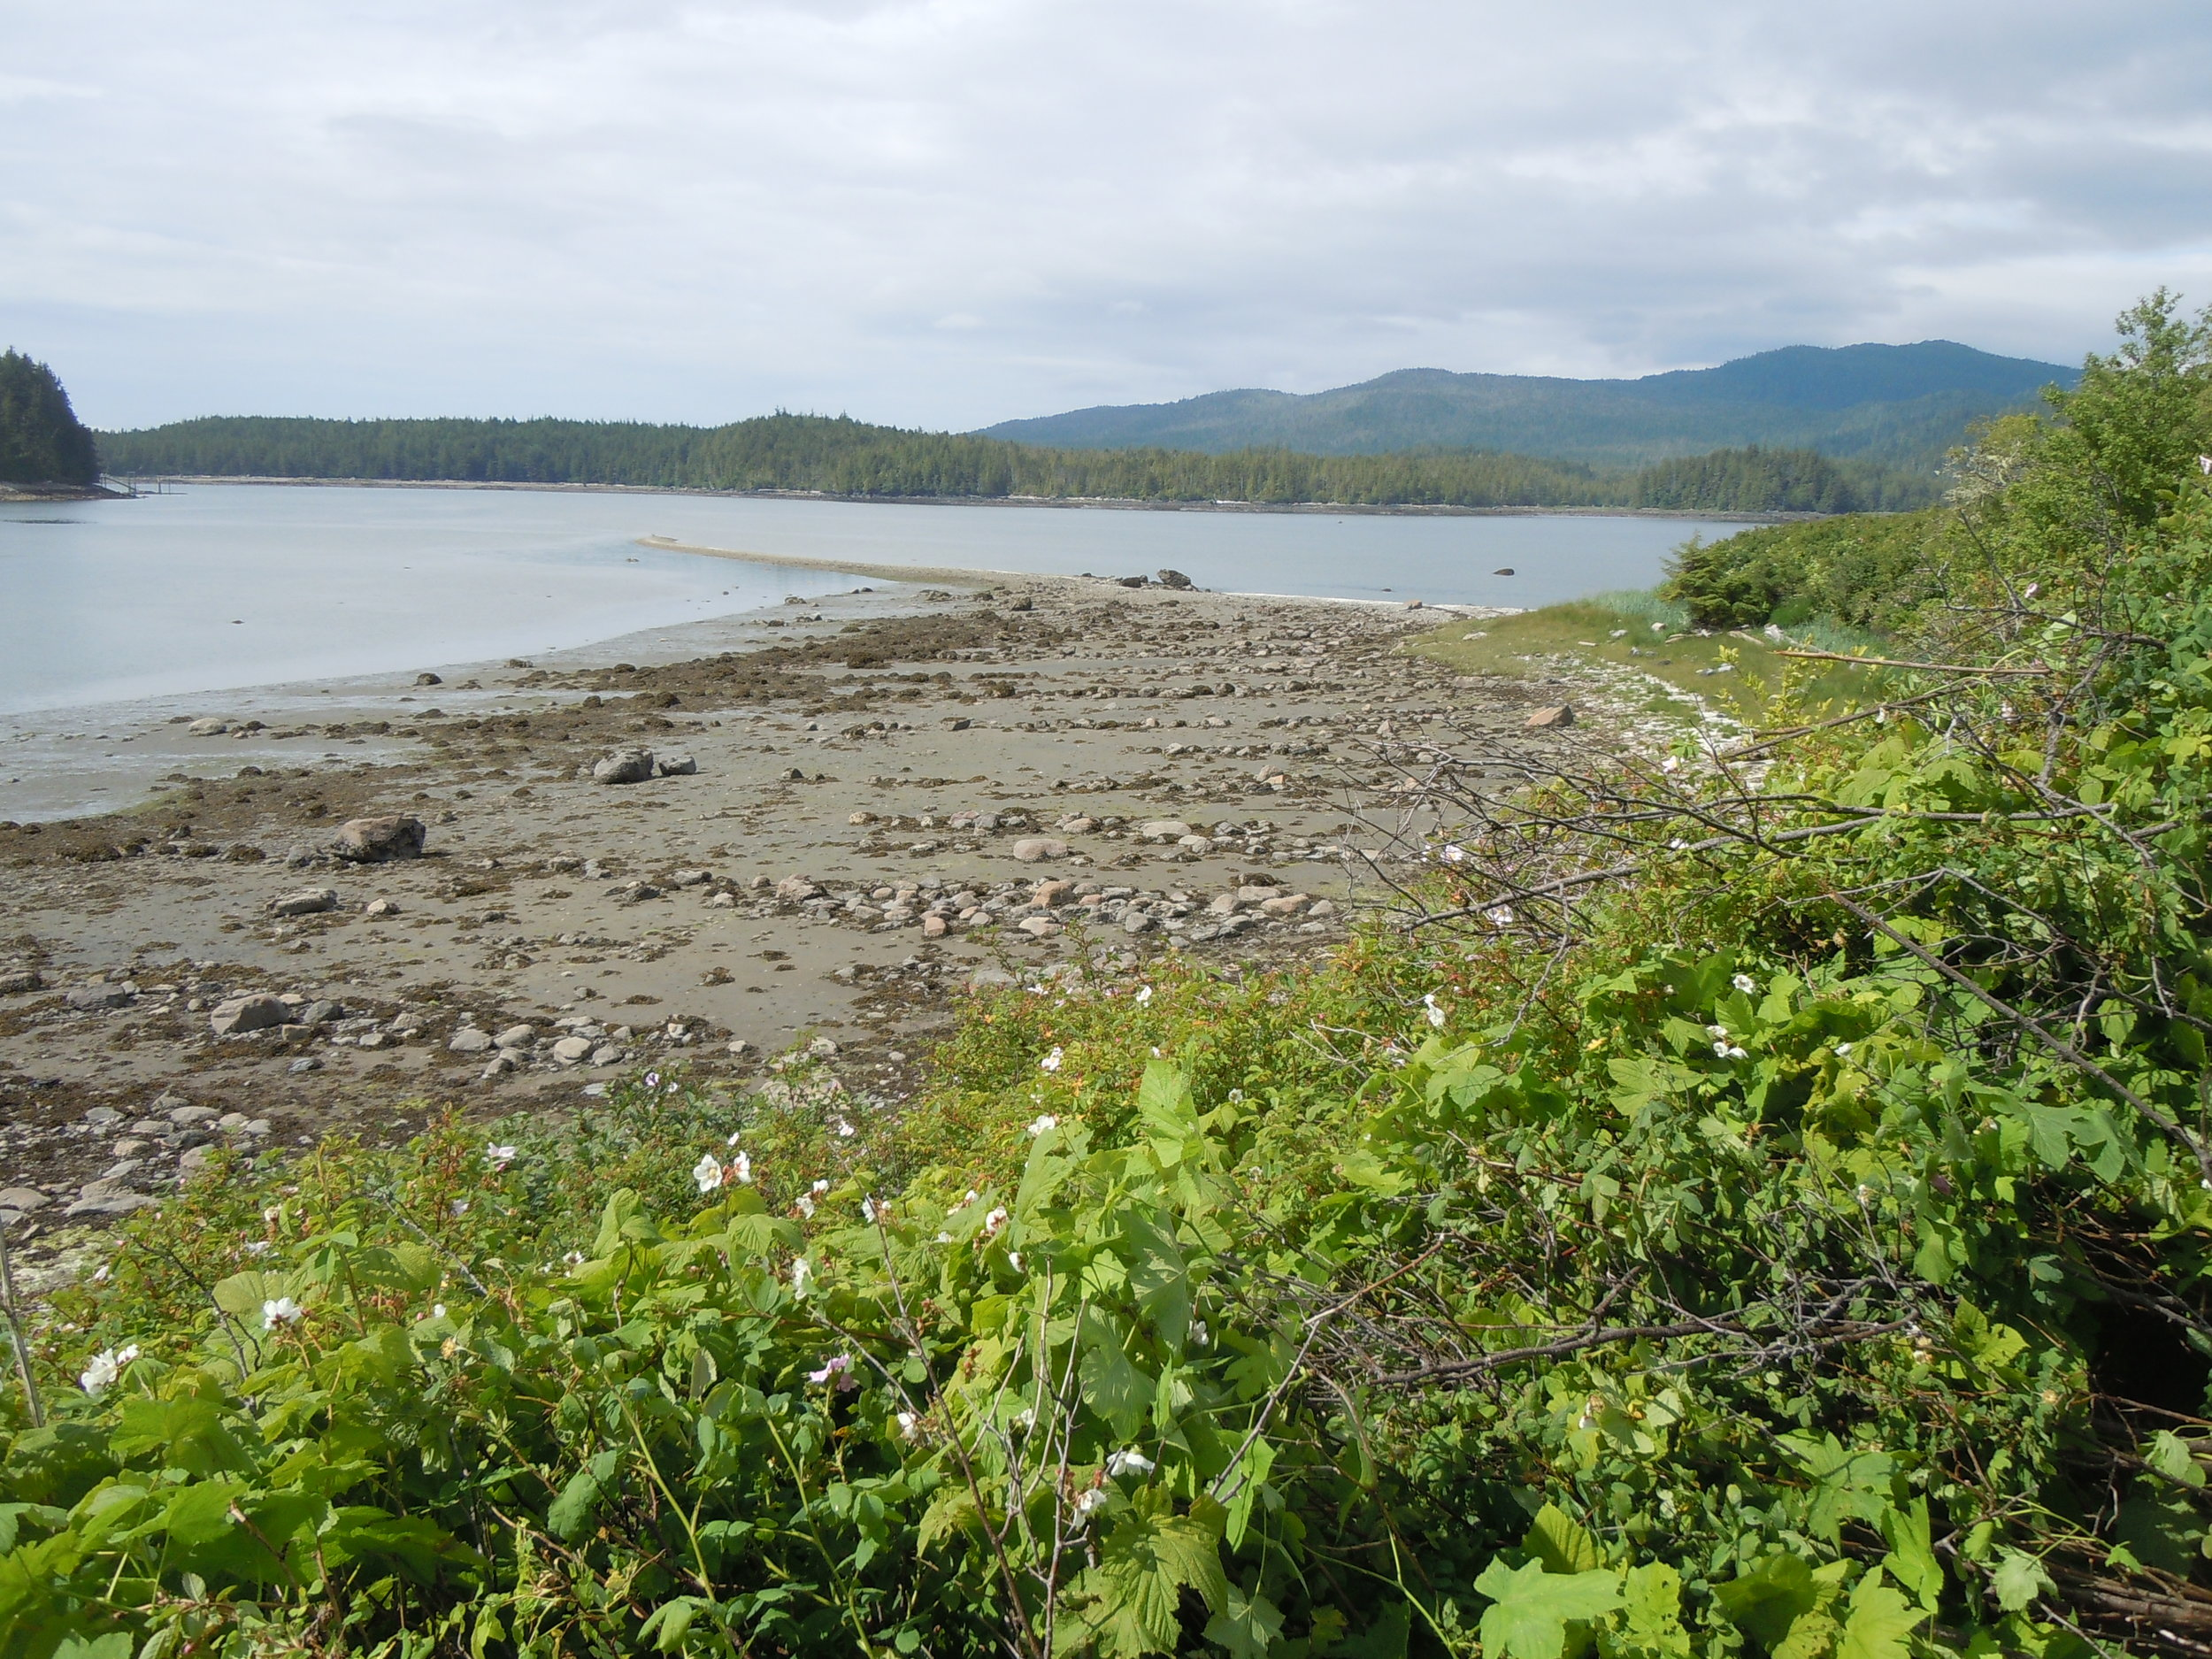 Rows of canoe runs formed by clearing lanes within boulders in front of an ancient village on Garden Island, Prince Rupert Harbour. Photo by B. Letham.